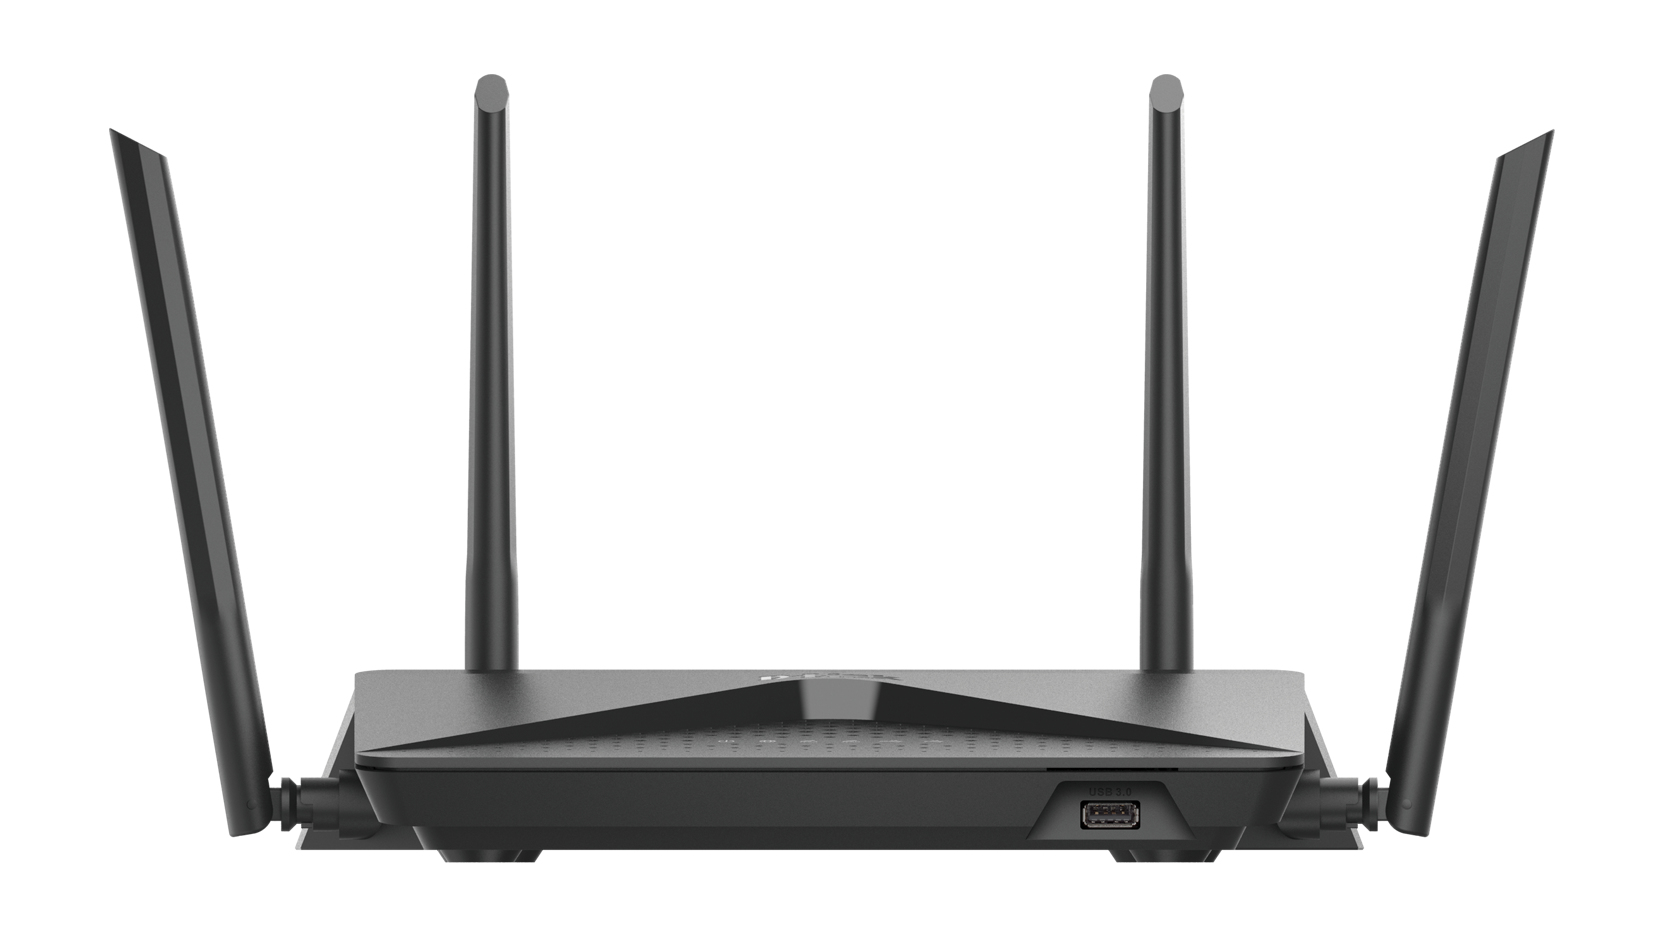 D-Link EXO AC2600 MU-MIMO wireless router Dual-band (2.4 GHz / 5 GHz) Gigabit Ethernet Black